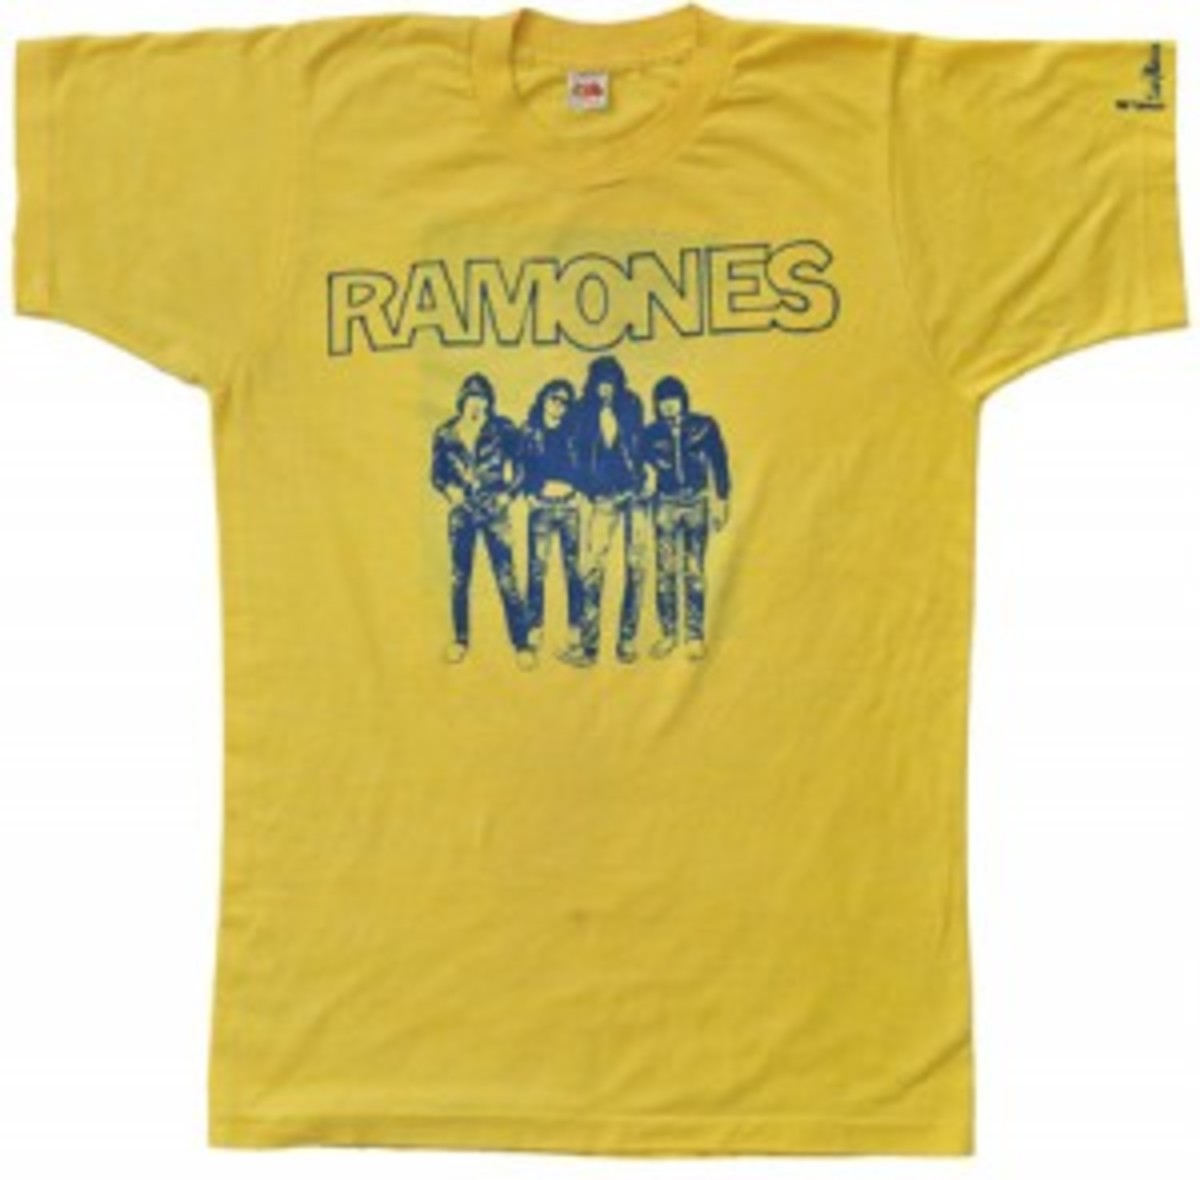 """Ramones"""" t-shirt, owned and worn by Dee Dee Ramone in 1976. Accompanied by a photograph of Dee Dee Ramone wearing an identical t-shirt. Dee Dee is also seen wearing an identical t-shirt in the documentary """"Johnny Ramone: Too Tough To Die"""", 1996."""